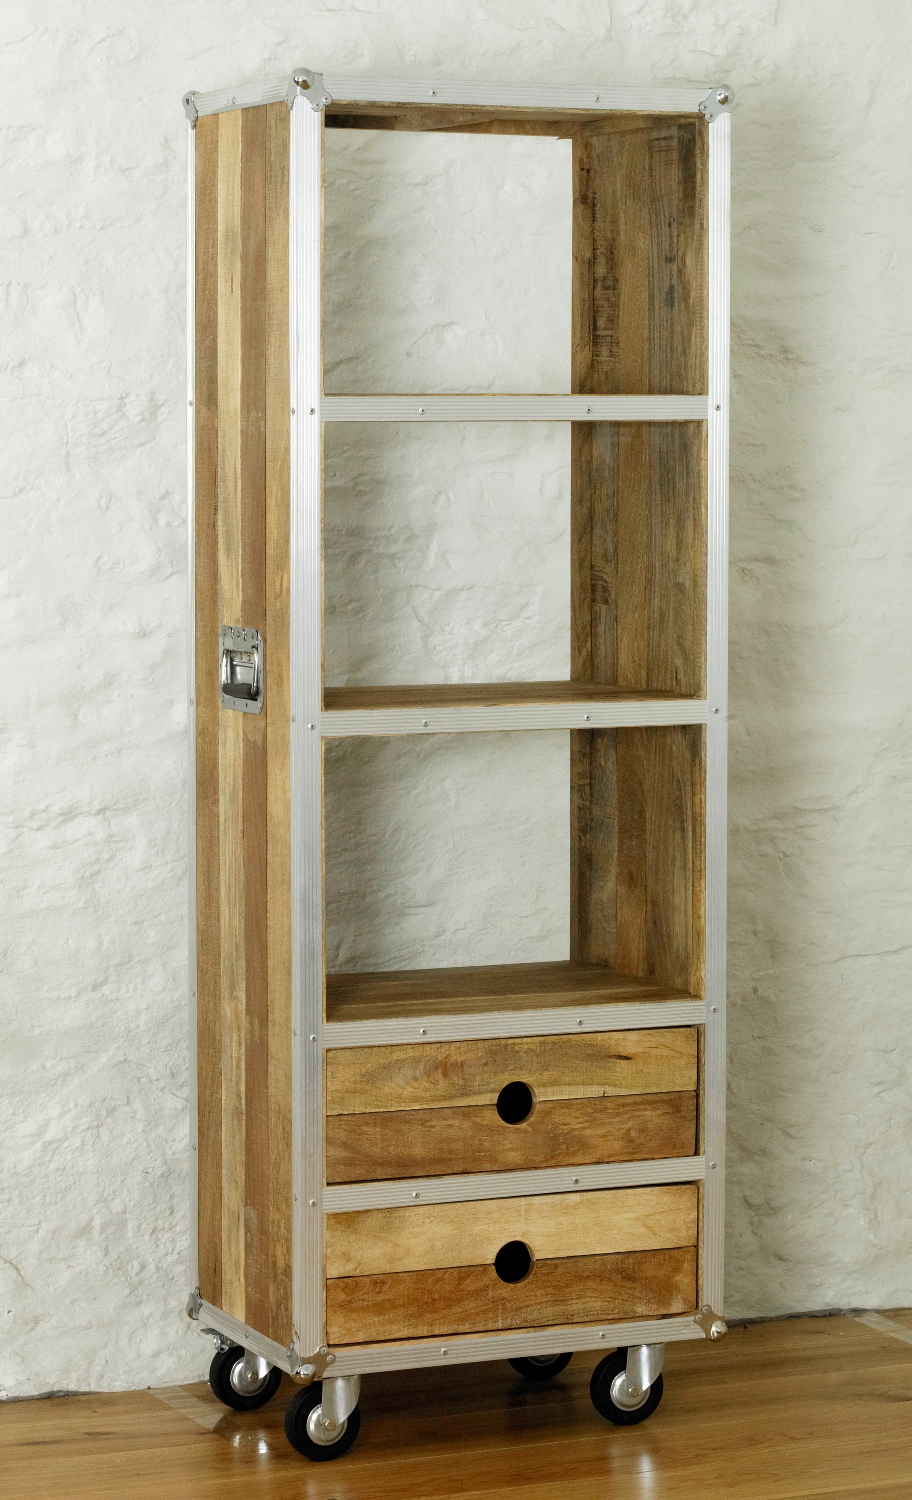 Image of: Bookcase with Drawers on Wheel